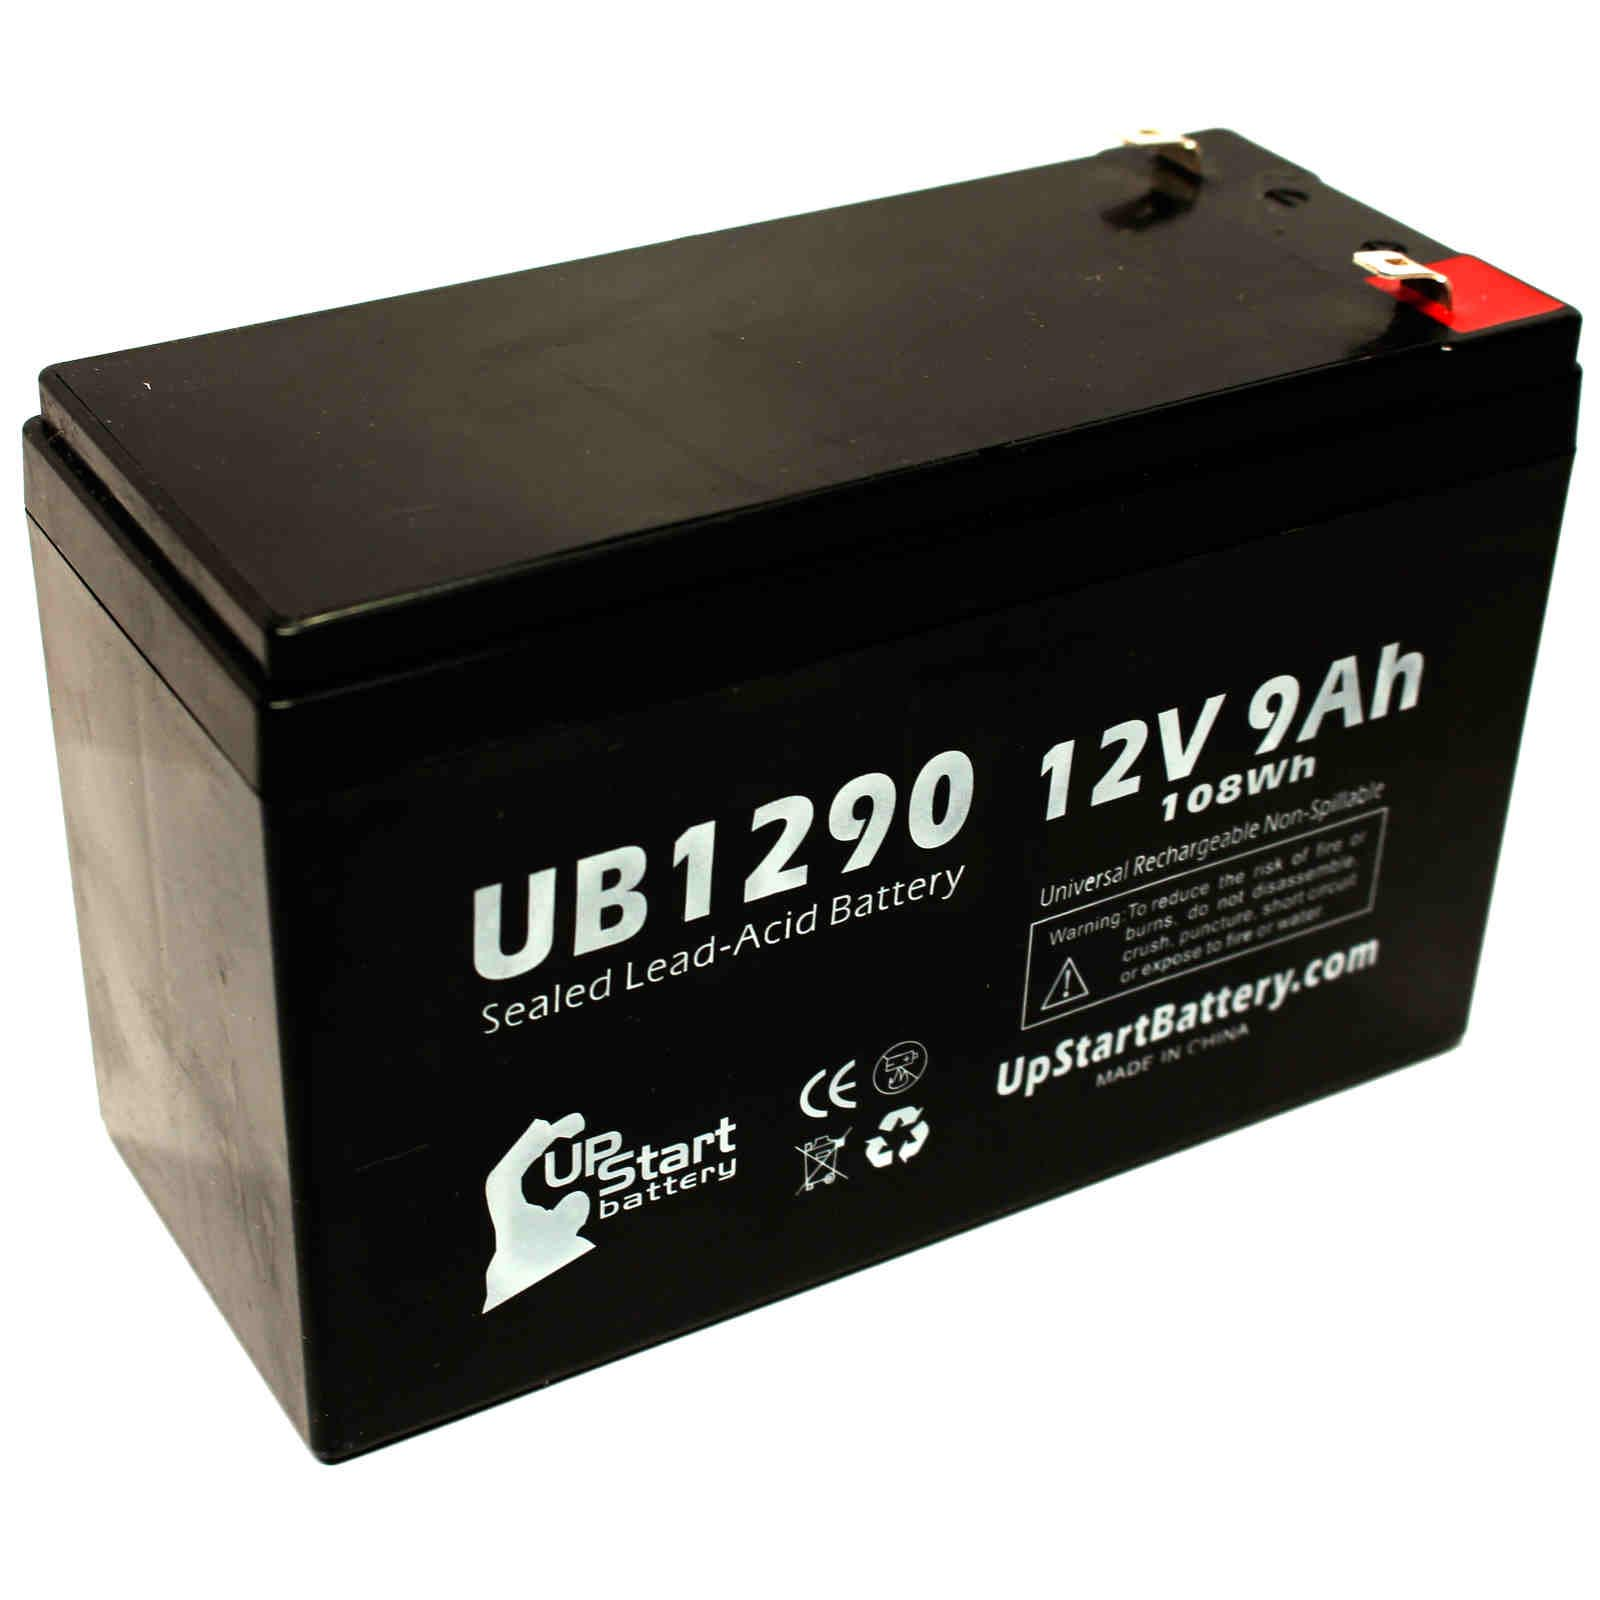 Cp1285avrlcd Replacement Battery Wiring Diagram Free Download Agm Alternator Apc Smart Ups 750 Ub1290 12v 9ah Sealed Lead Acid Sla Ebay